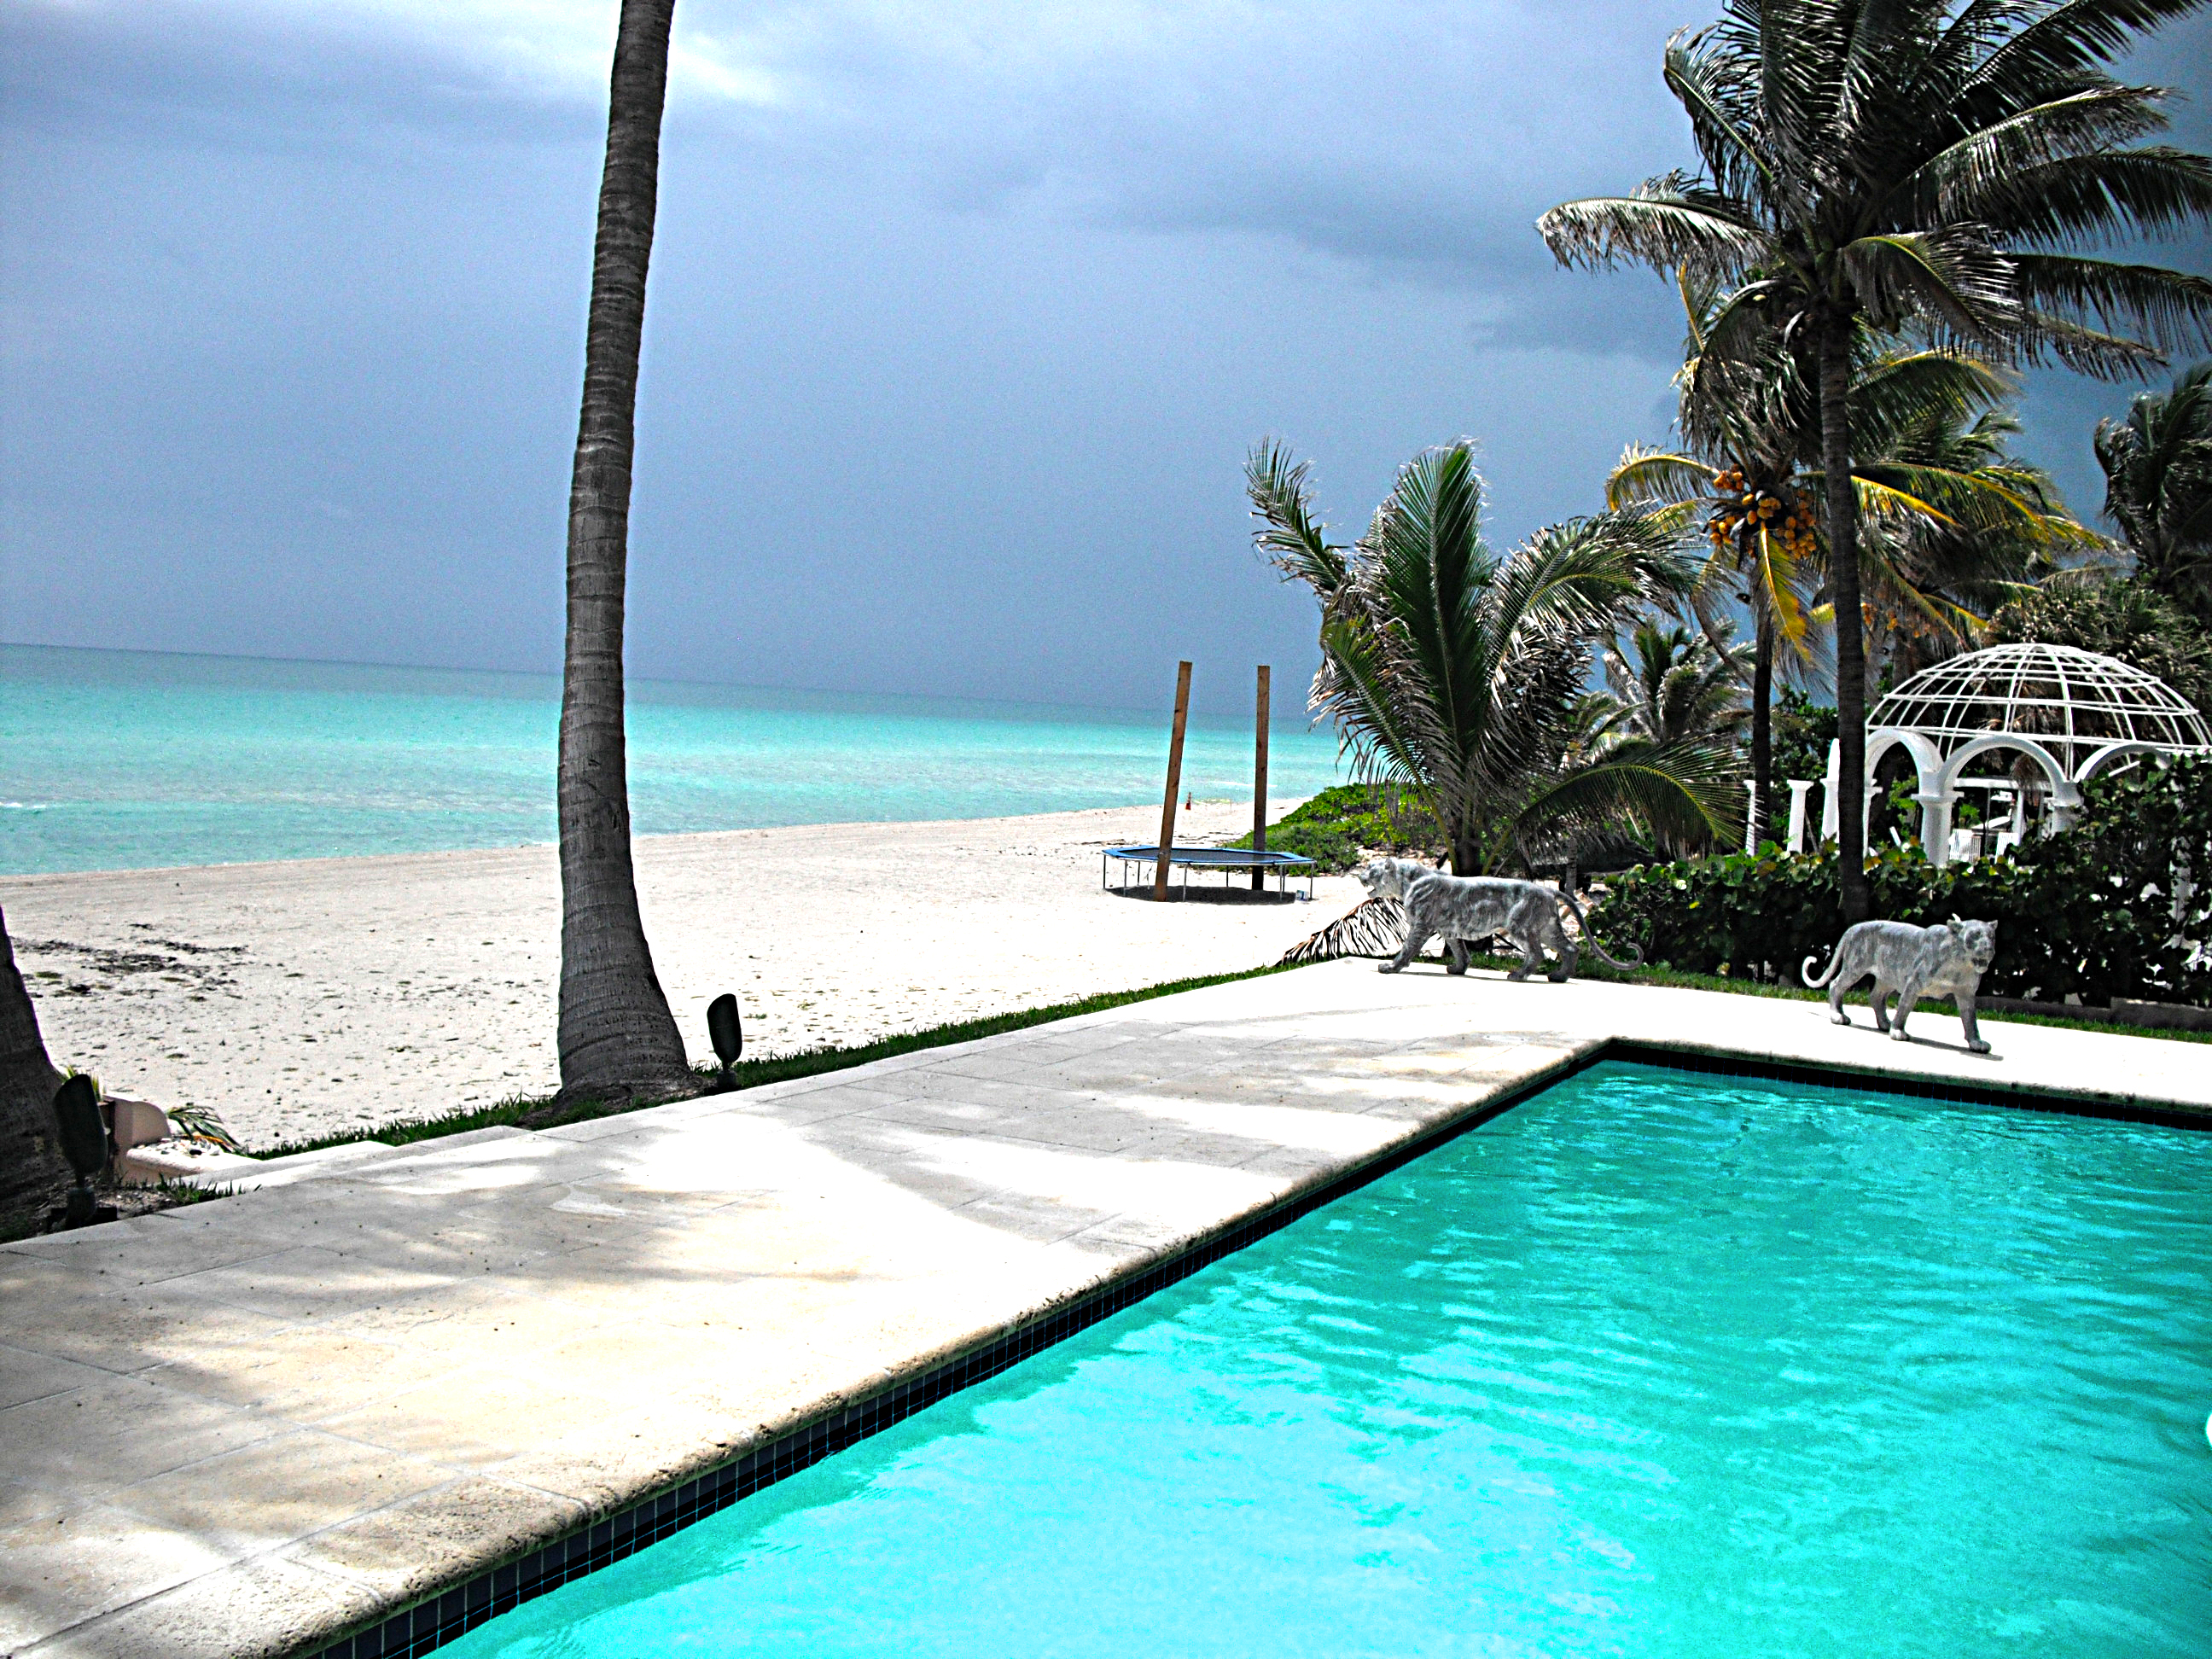 You Can Rely On Experts Do It Better Fort Lauderdale Pool Service Fall In Love With Your